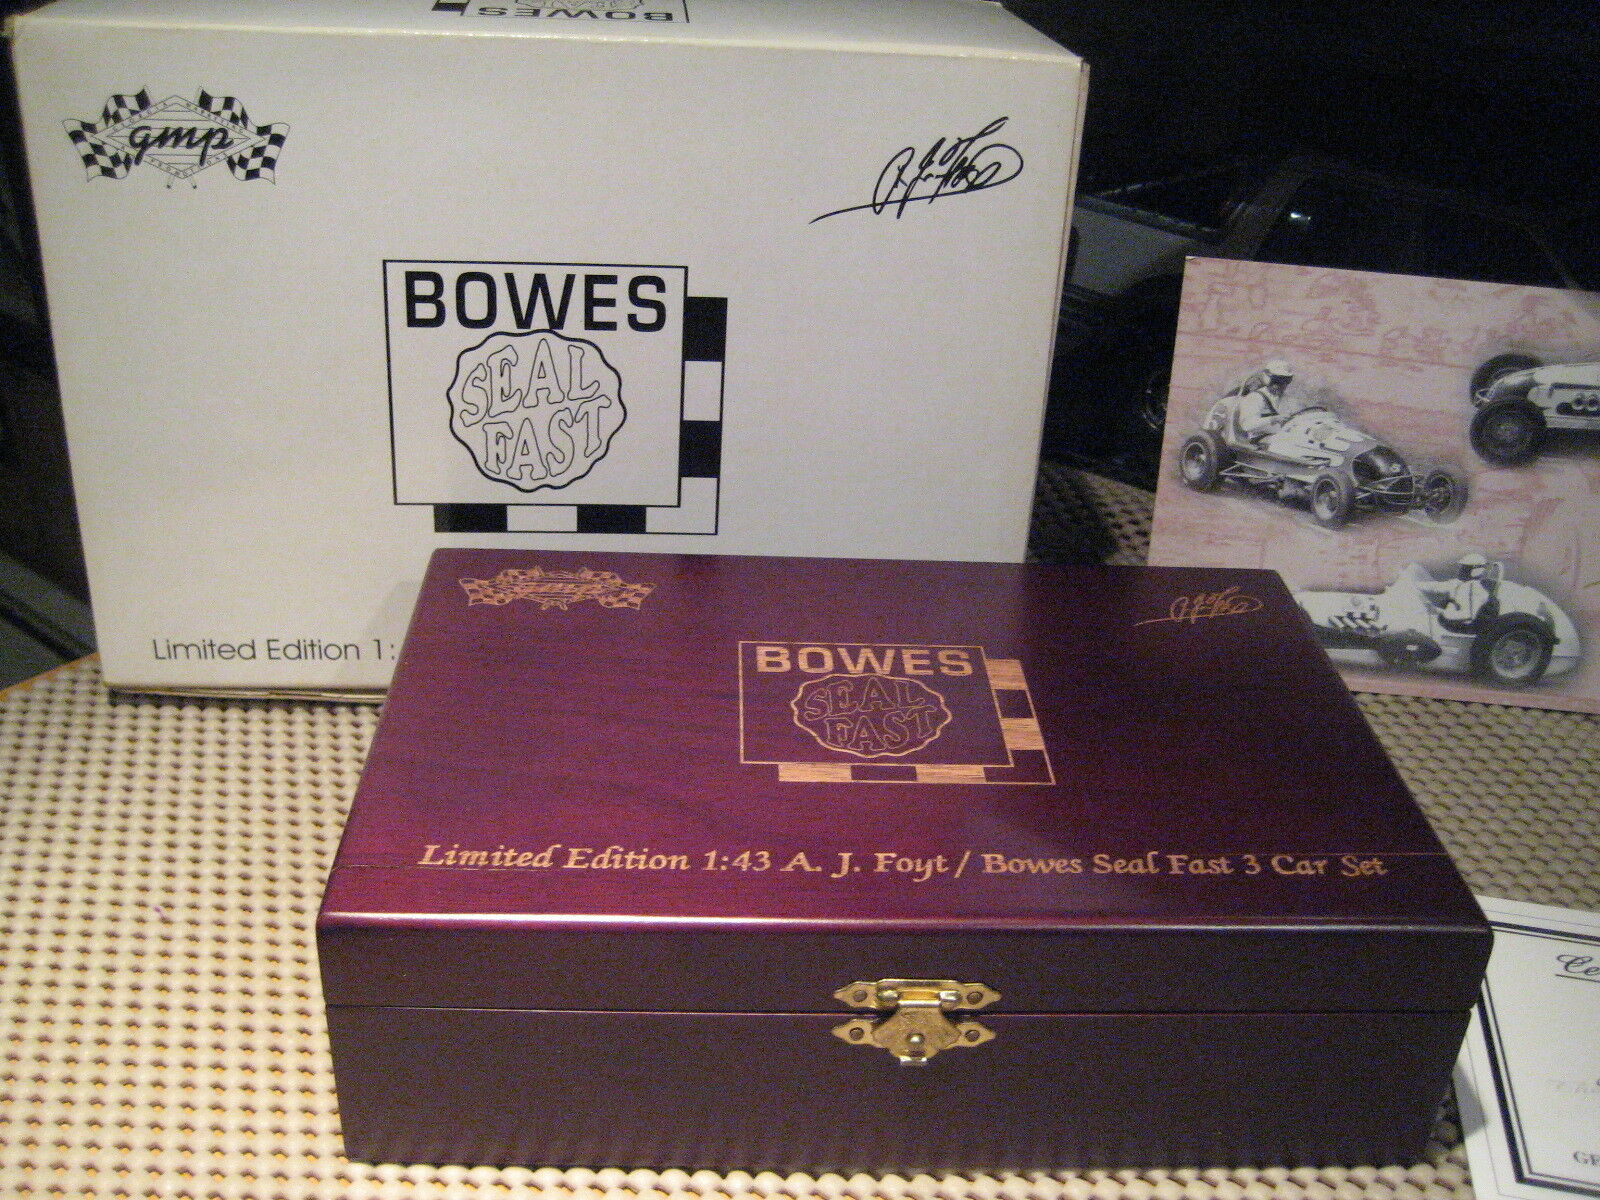 GMP - - - LIMITED EDITION 1 43 A.J. FOYT   BOWES SEAL FAST 3 CAR SET f7827a